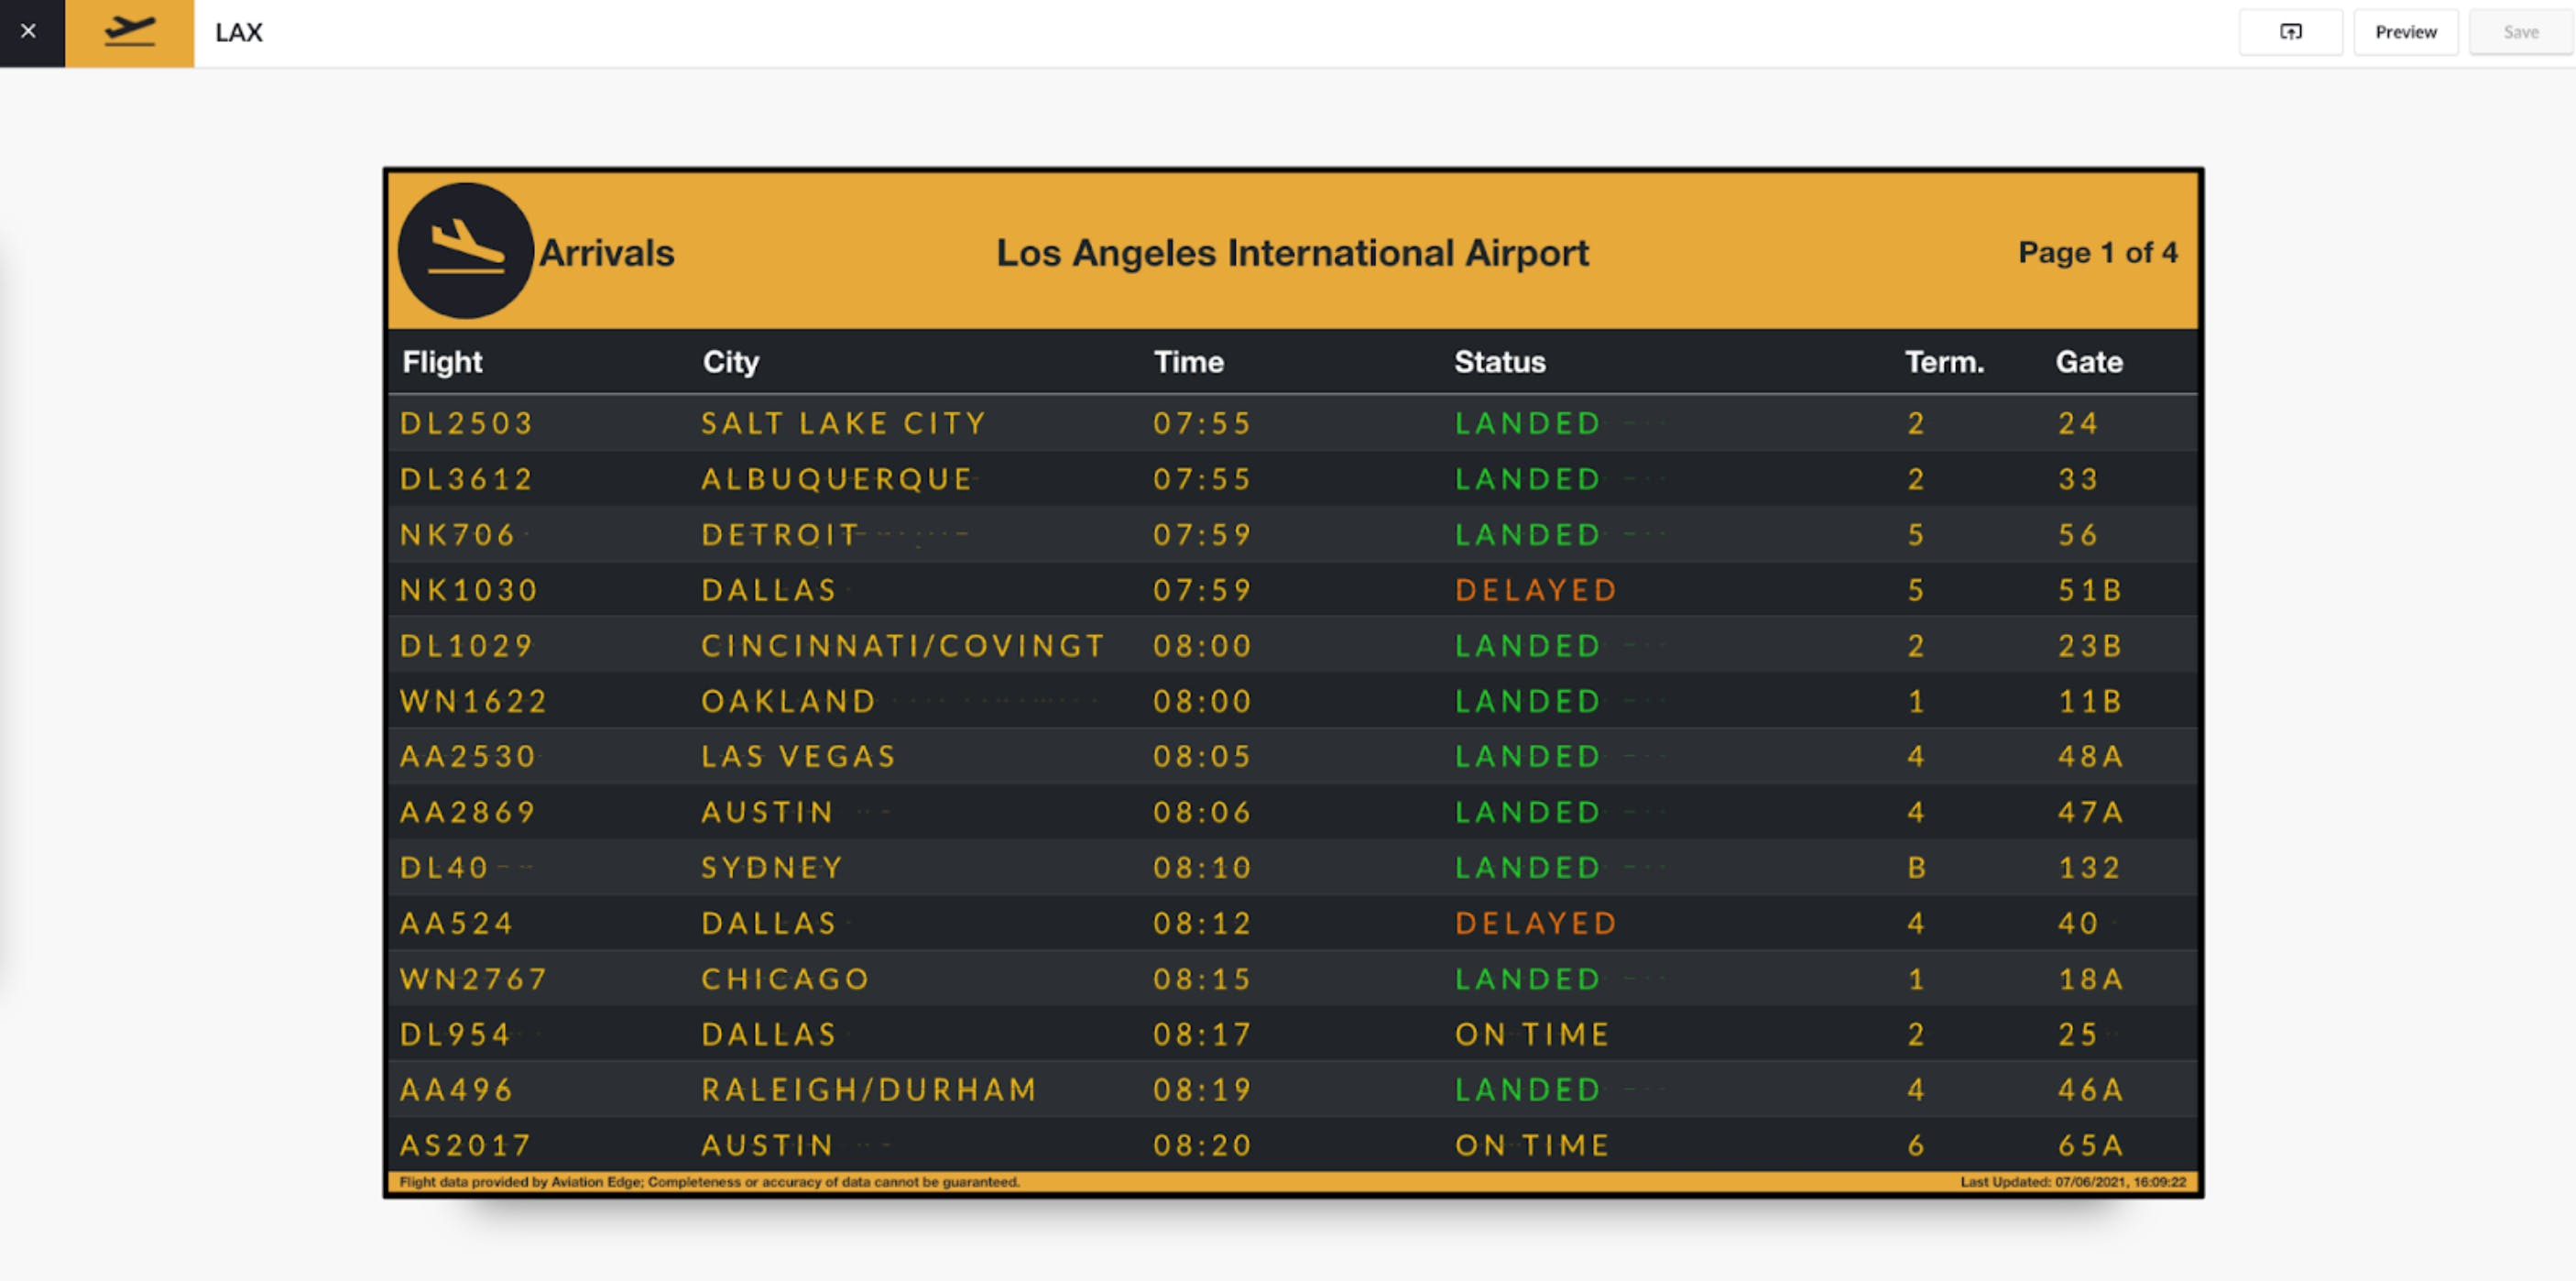 ScreenCloud Flight Schedules - New Preview disclaimer 6.10.2021.png